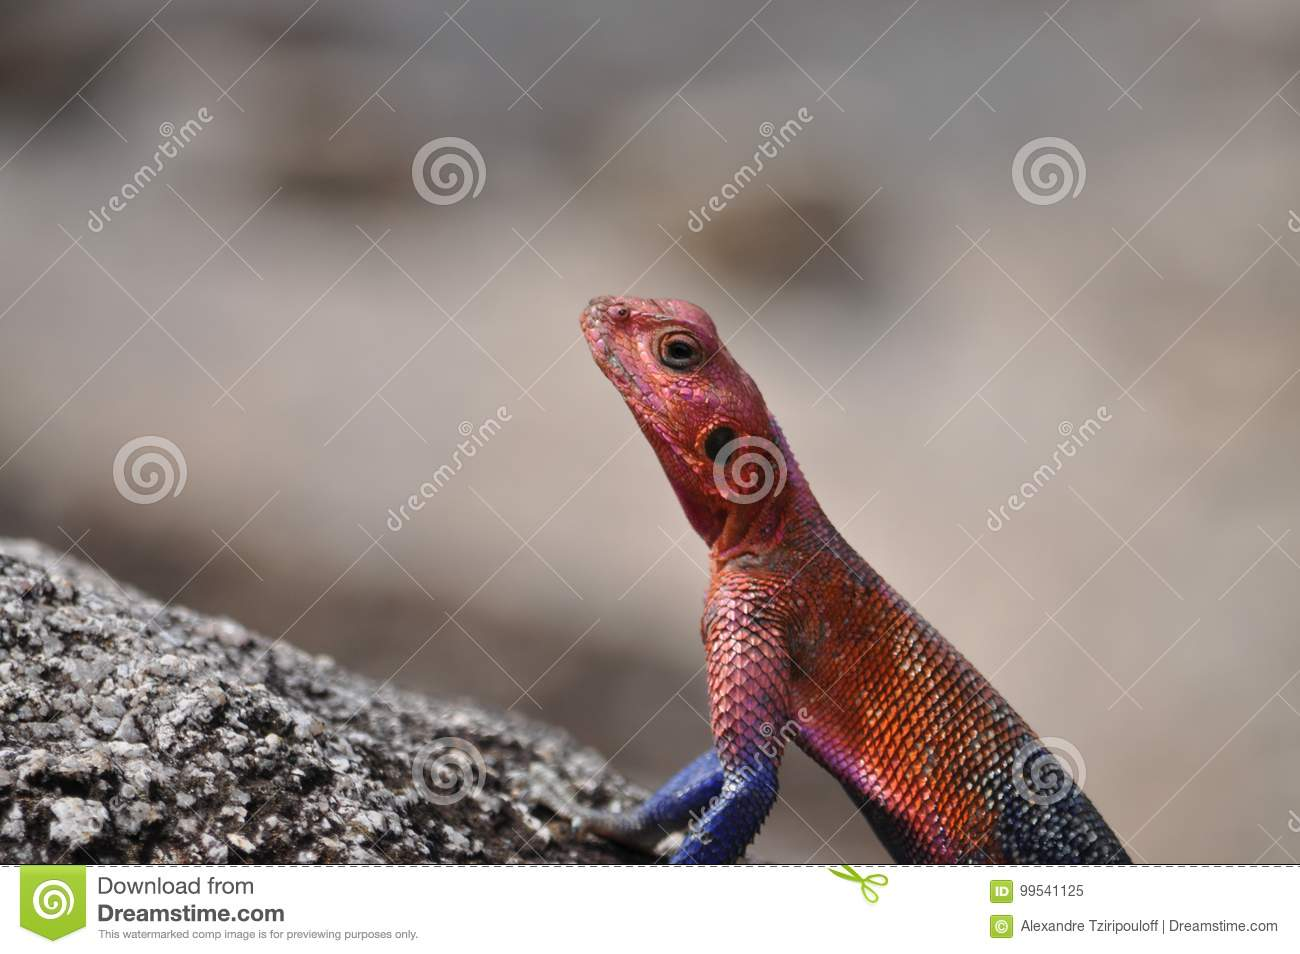 A picture of an Agama.